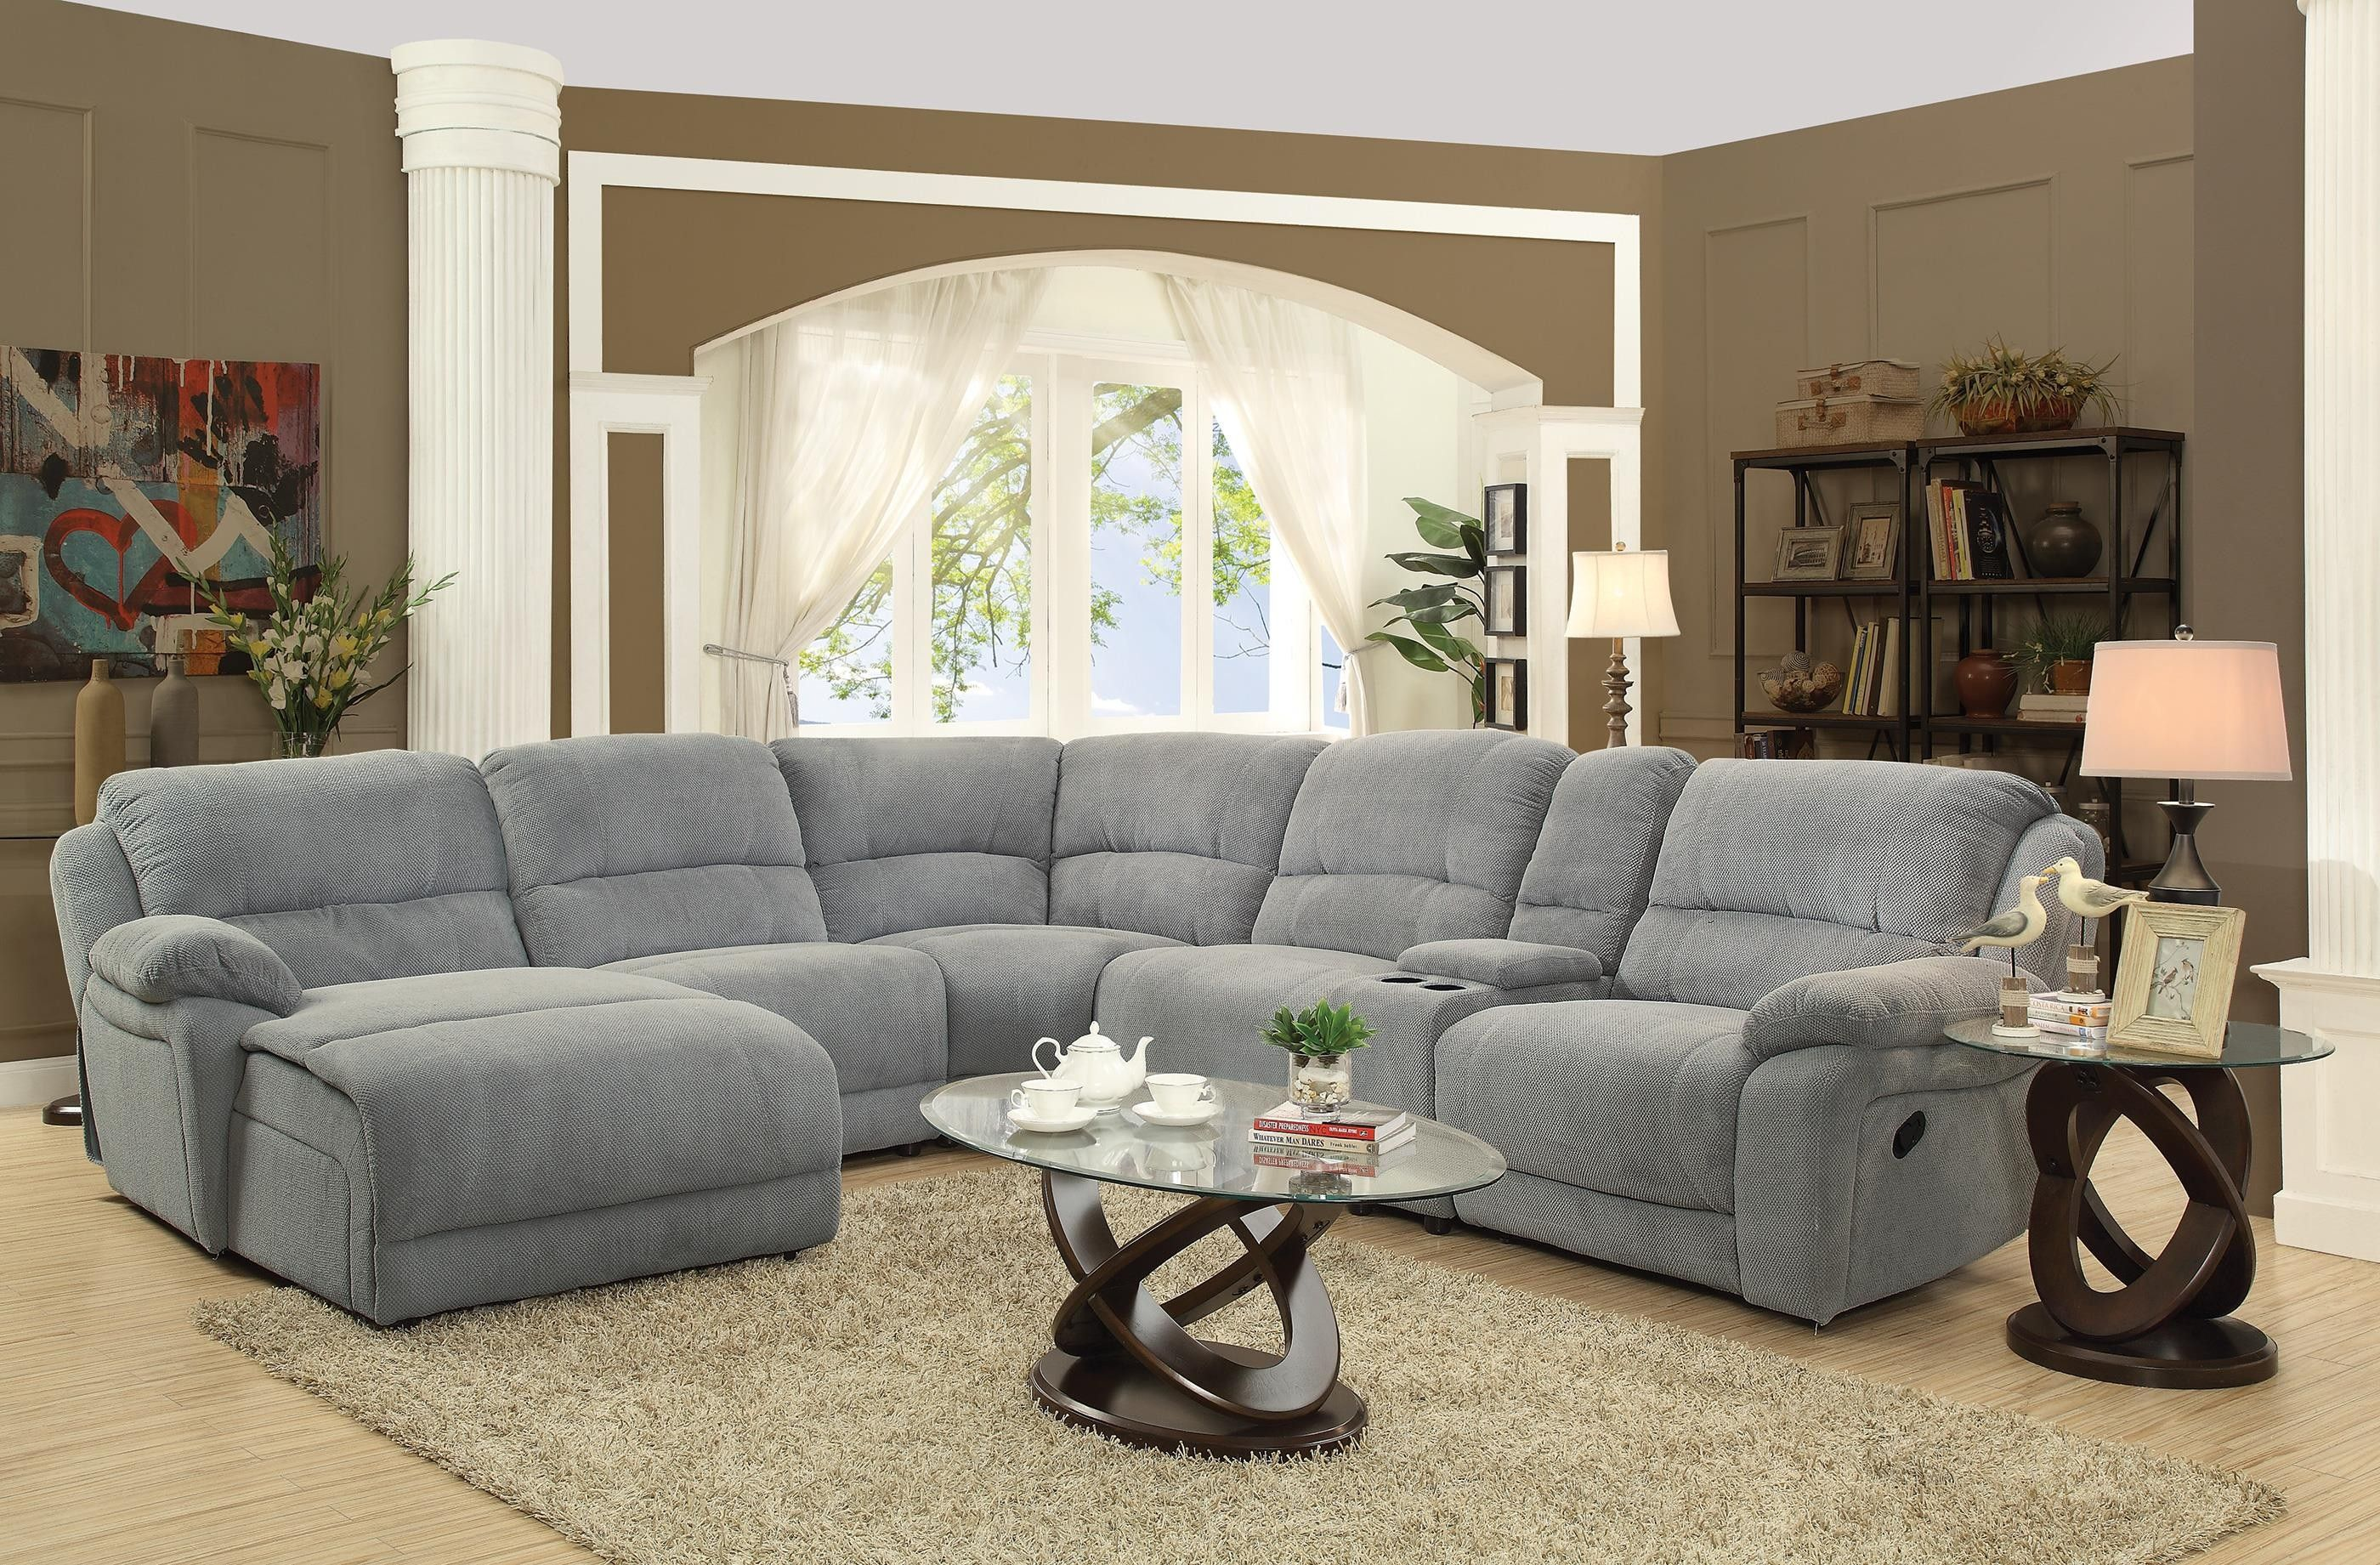 Coaster 600017 Mackenzie Silver Tone 6 Piece Reclining Sectional Sofa    Main Image